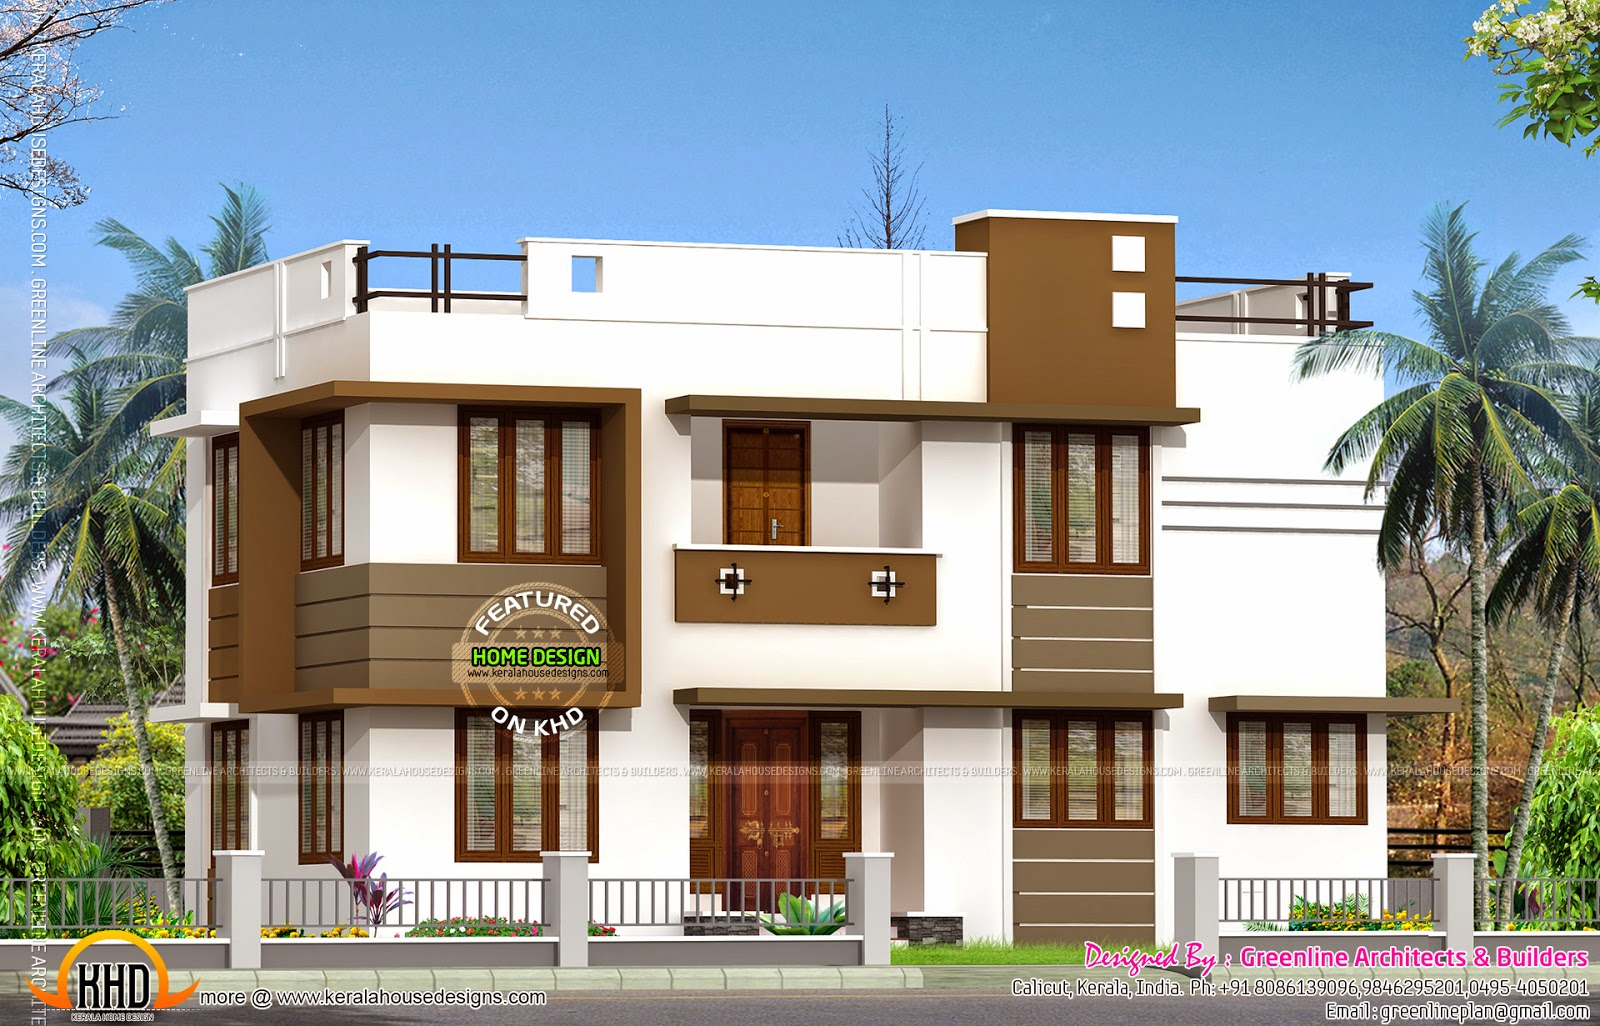 August 2014 kerala home design and floor plans for Low cost house plans with photos in kerala